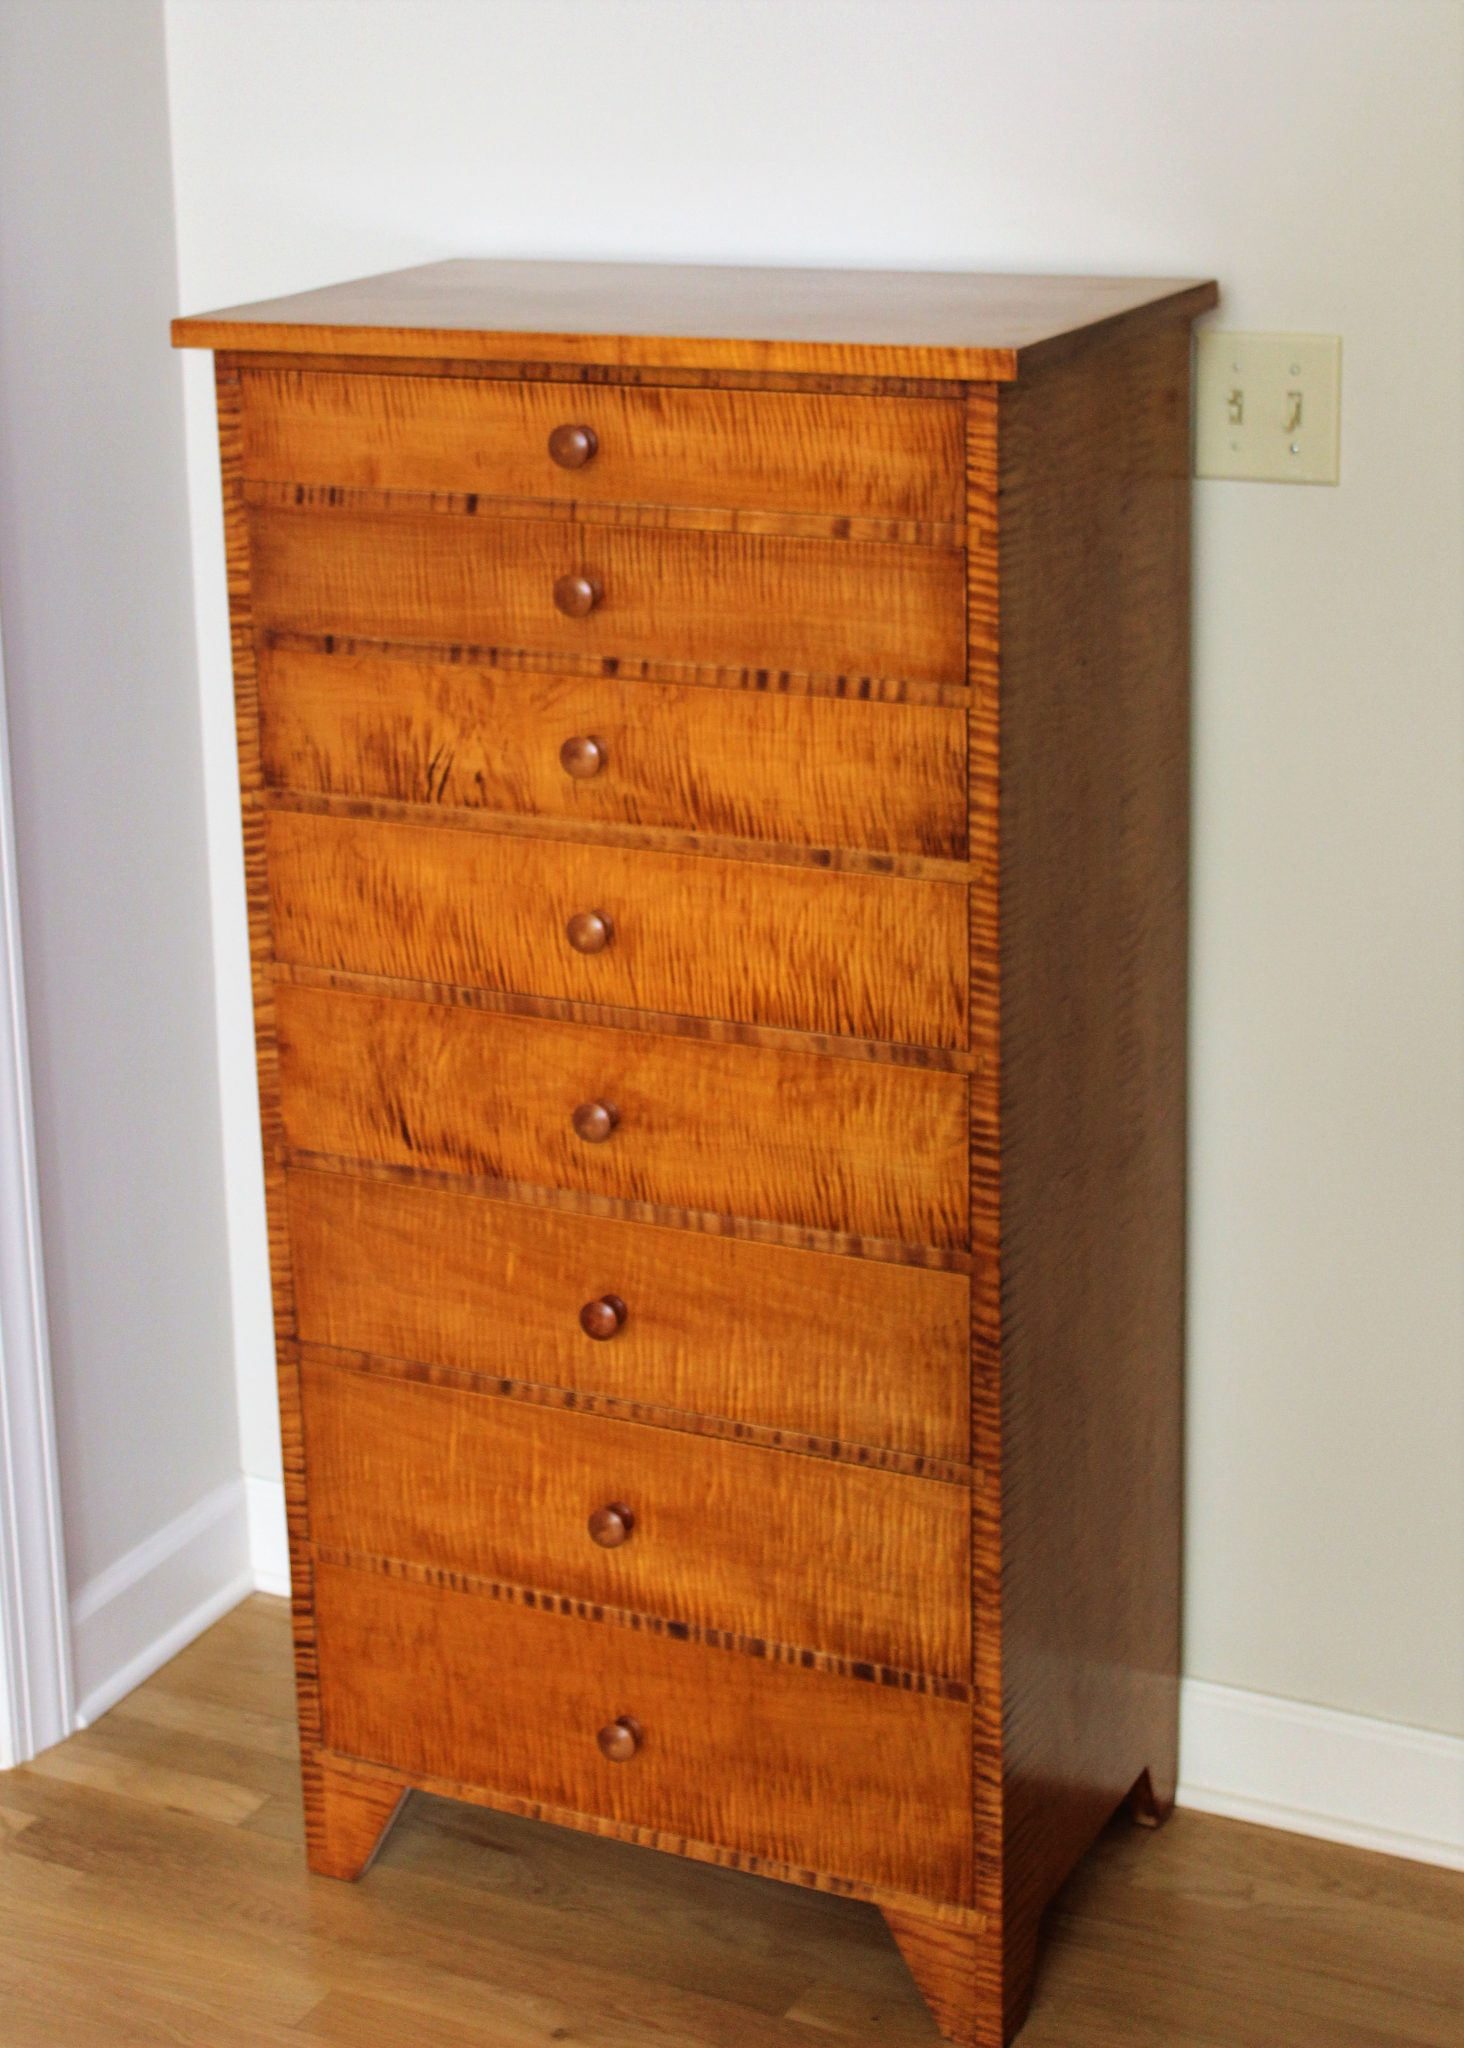 Shaker chest in curly maple